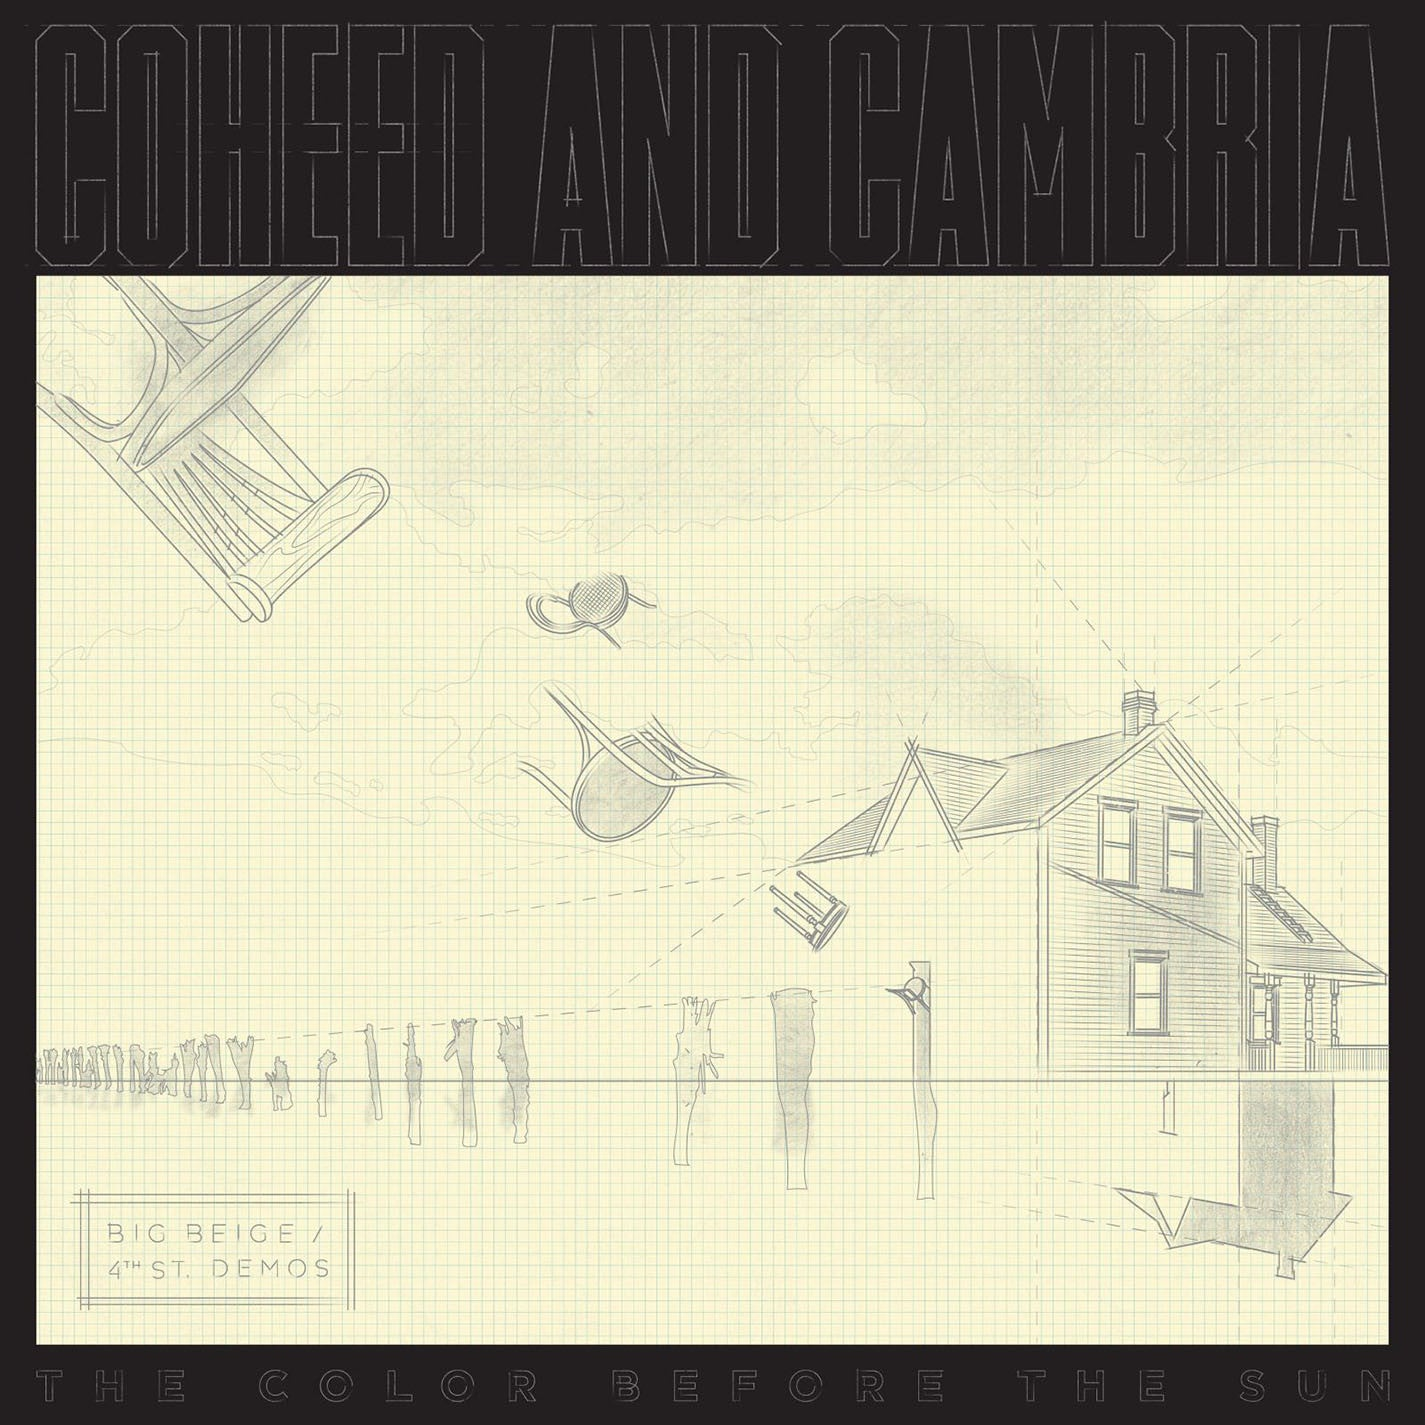 Coheed and Cambria Official Band Demos (Colored Vinyl) Vinyl LP (Record  Store Day)